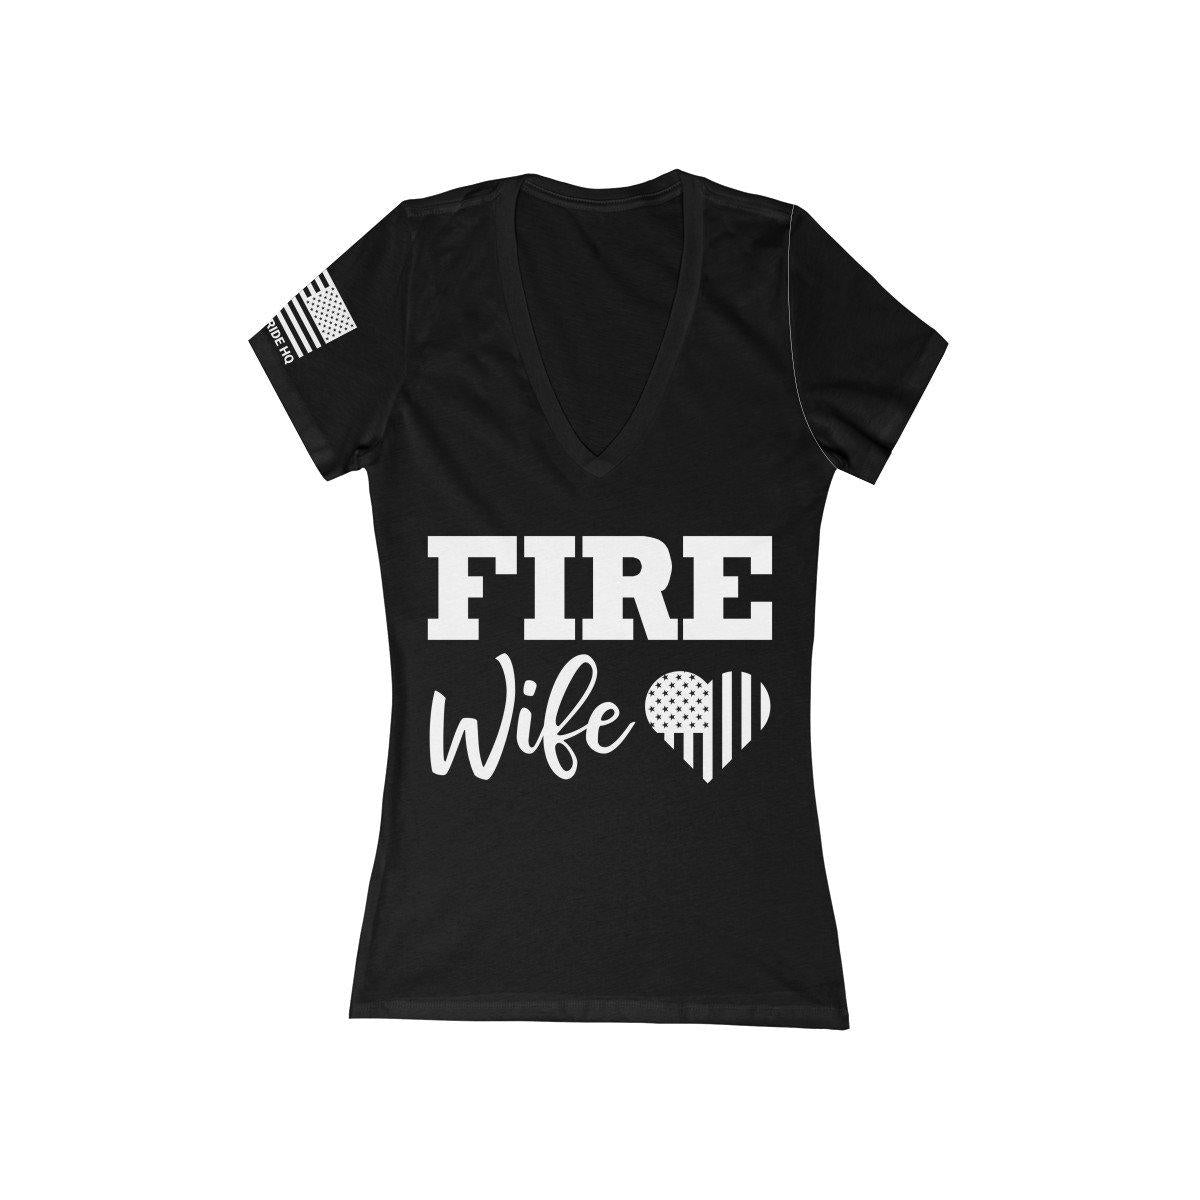 Firefighter's Wife Women's V-Neck Tee